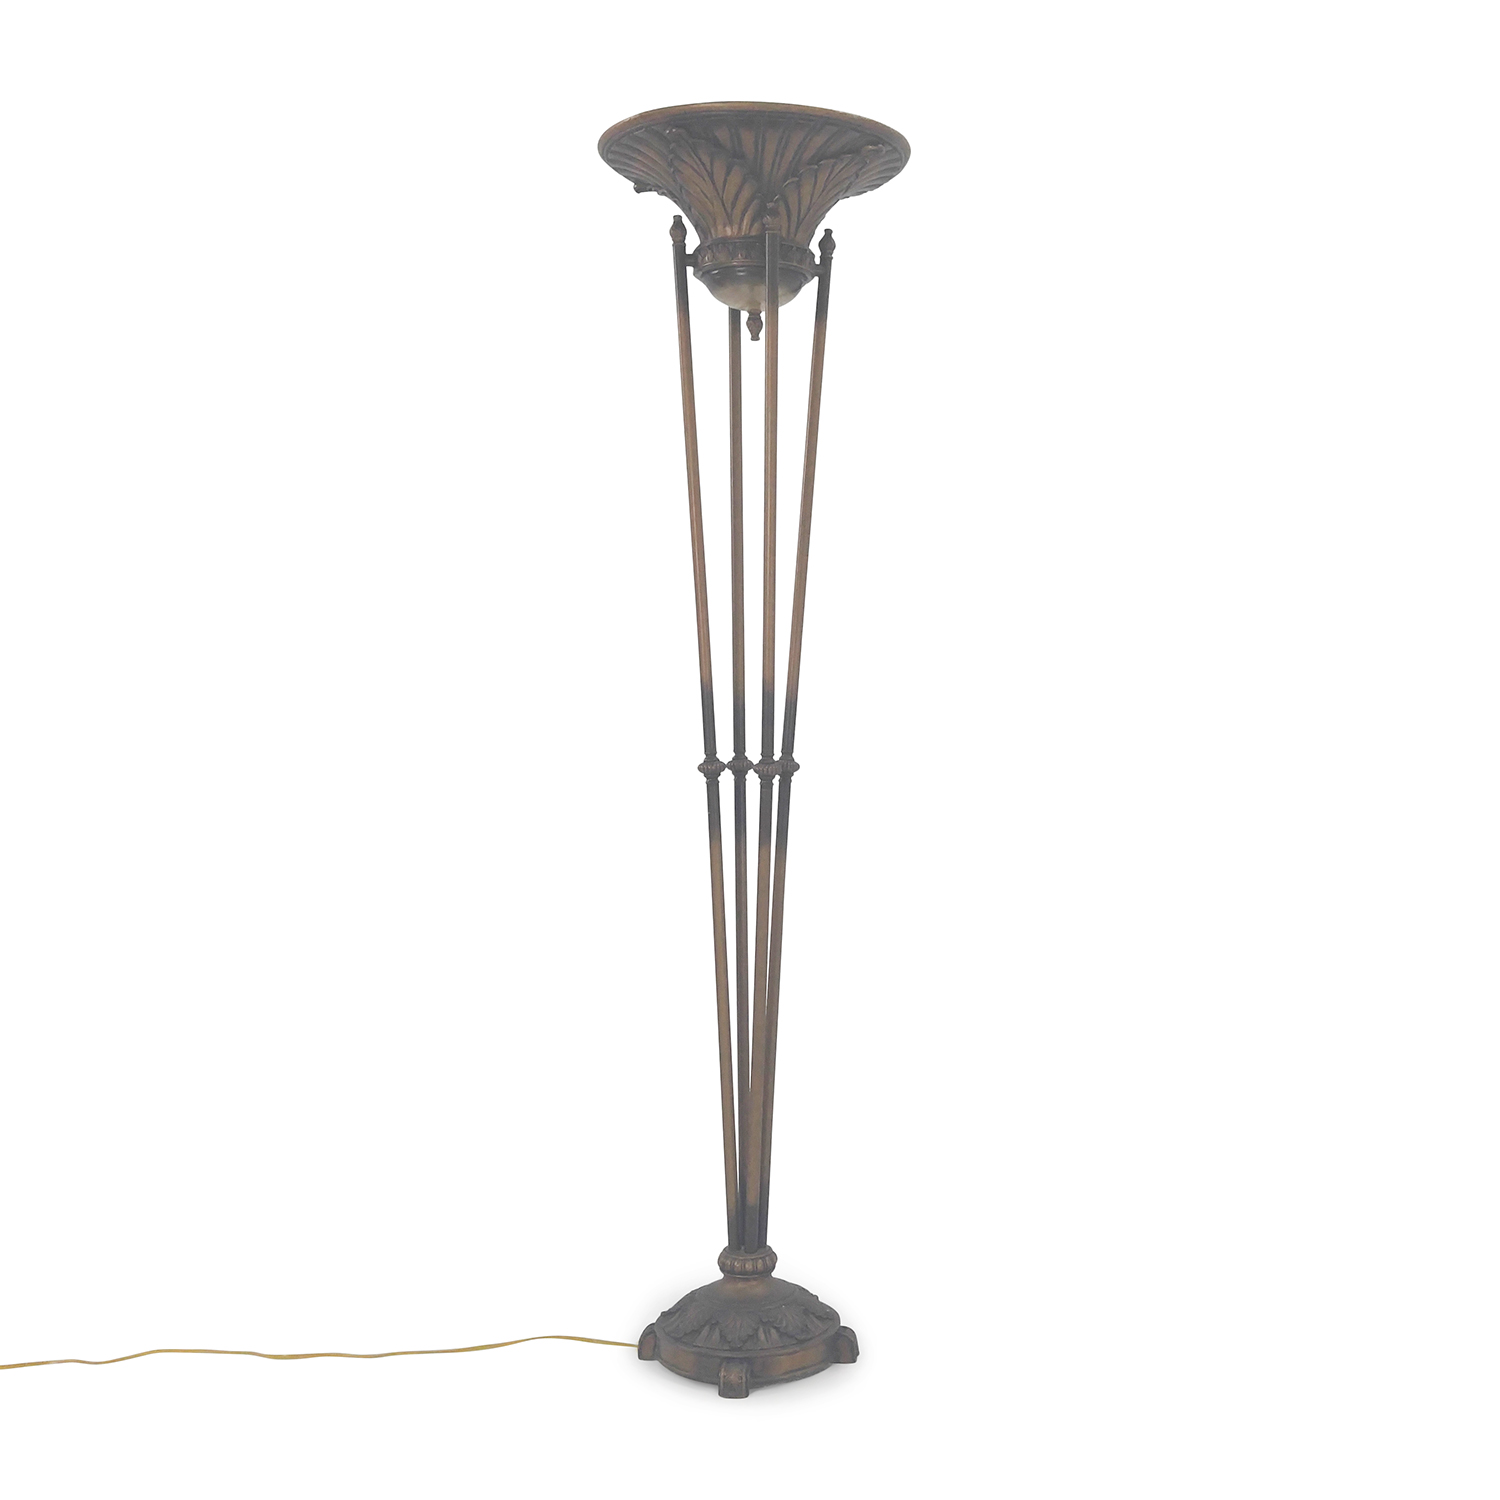 Cast Iron Large Floor Lamp / Lamps